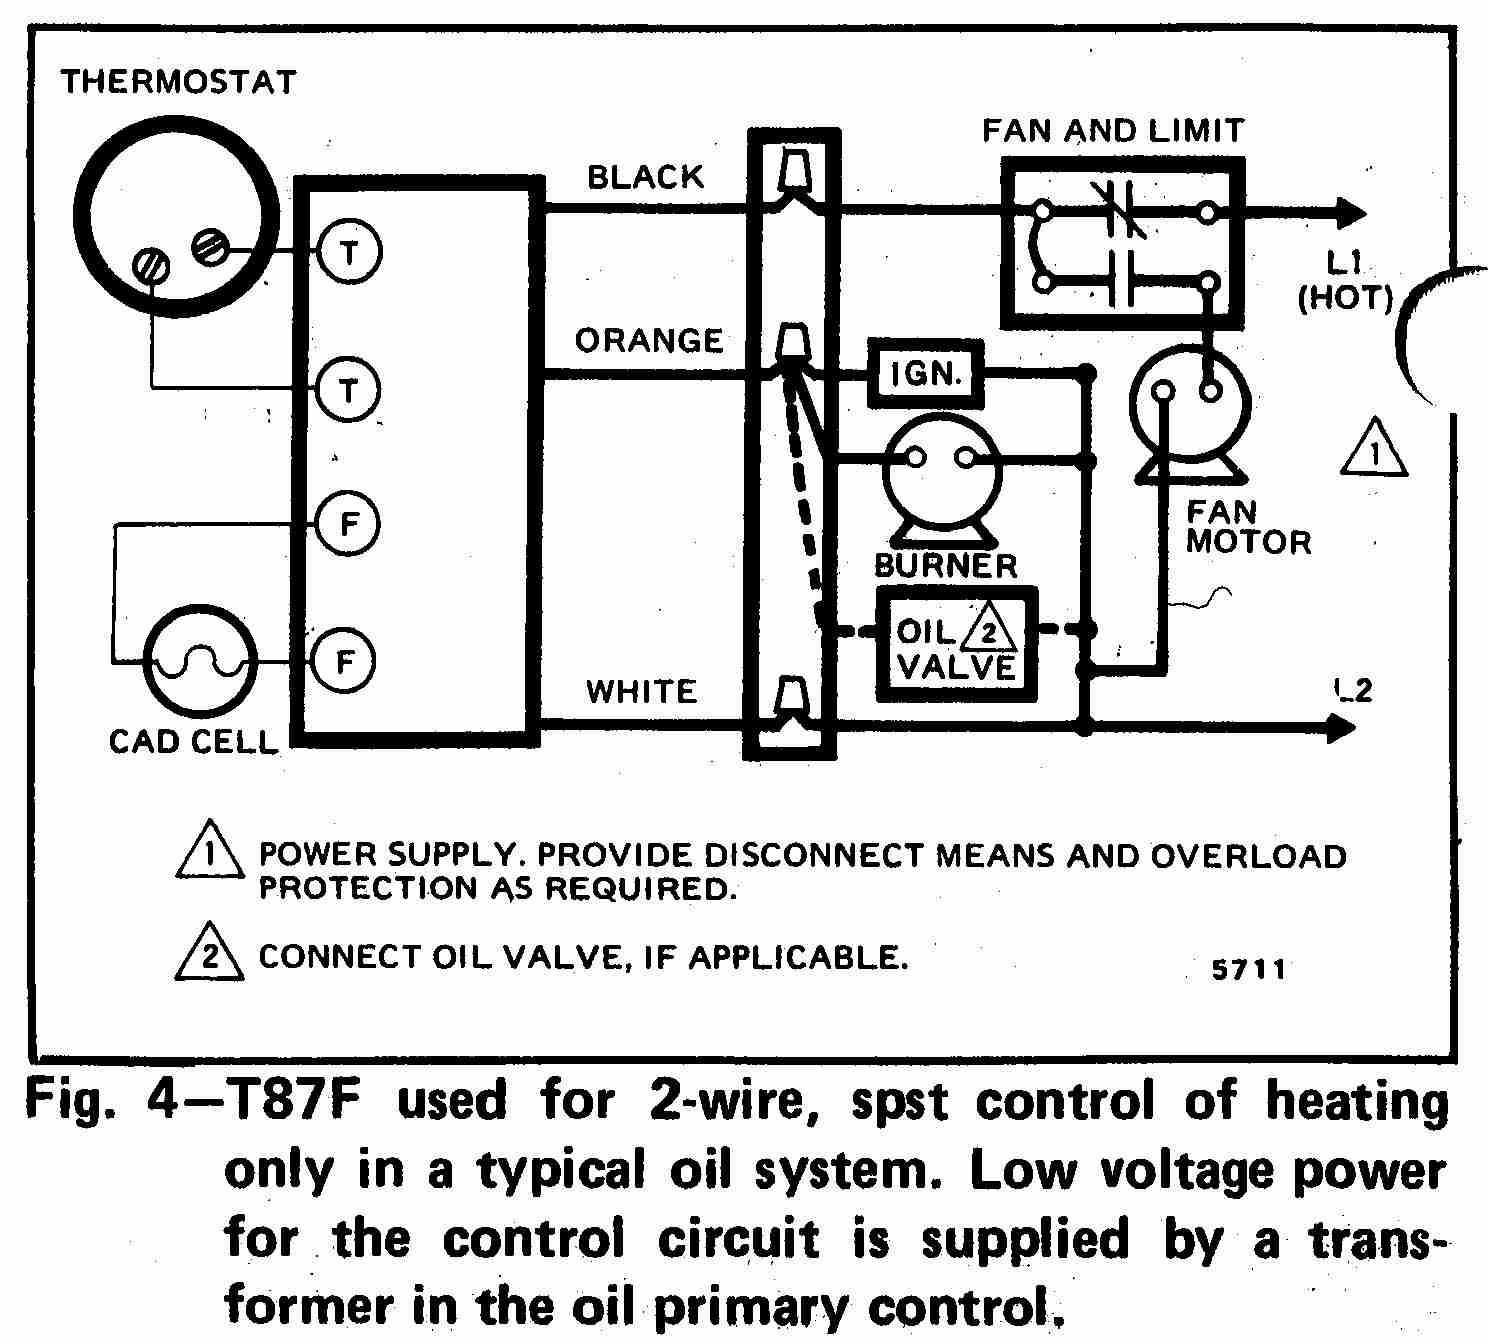 Honeywell Thermostat Wiring Diagram